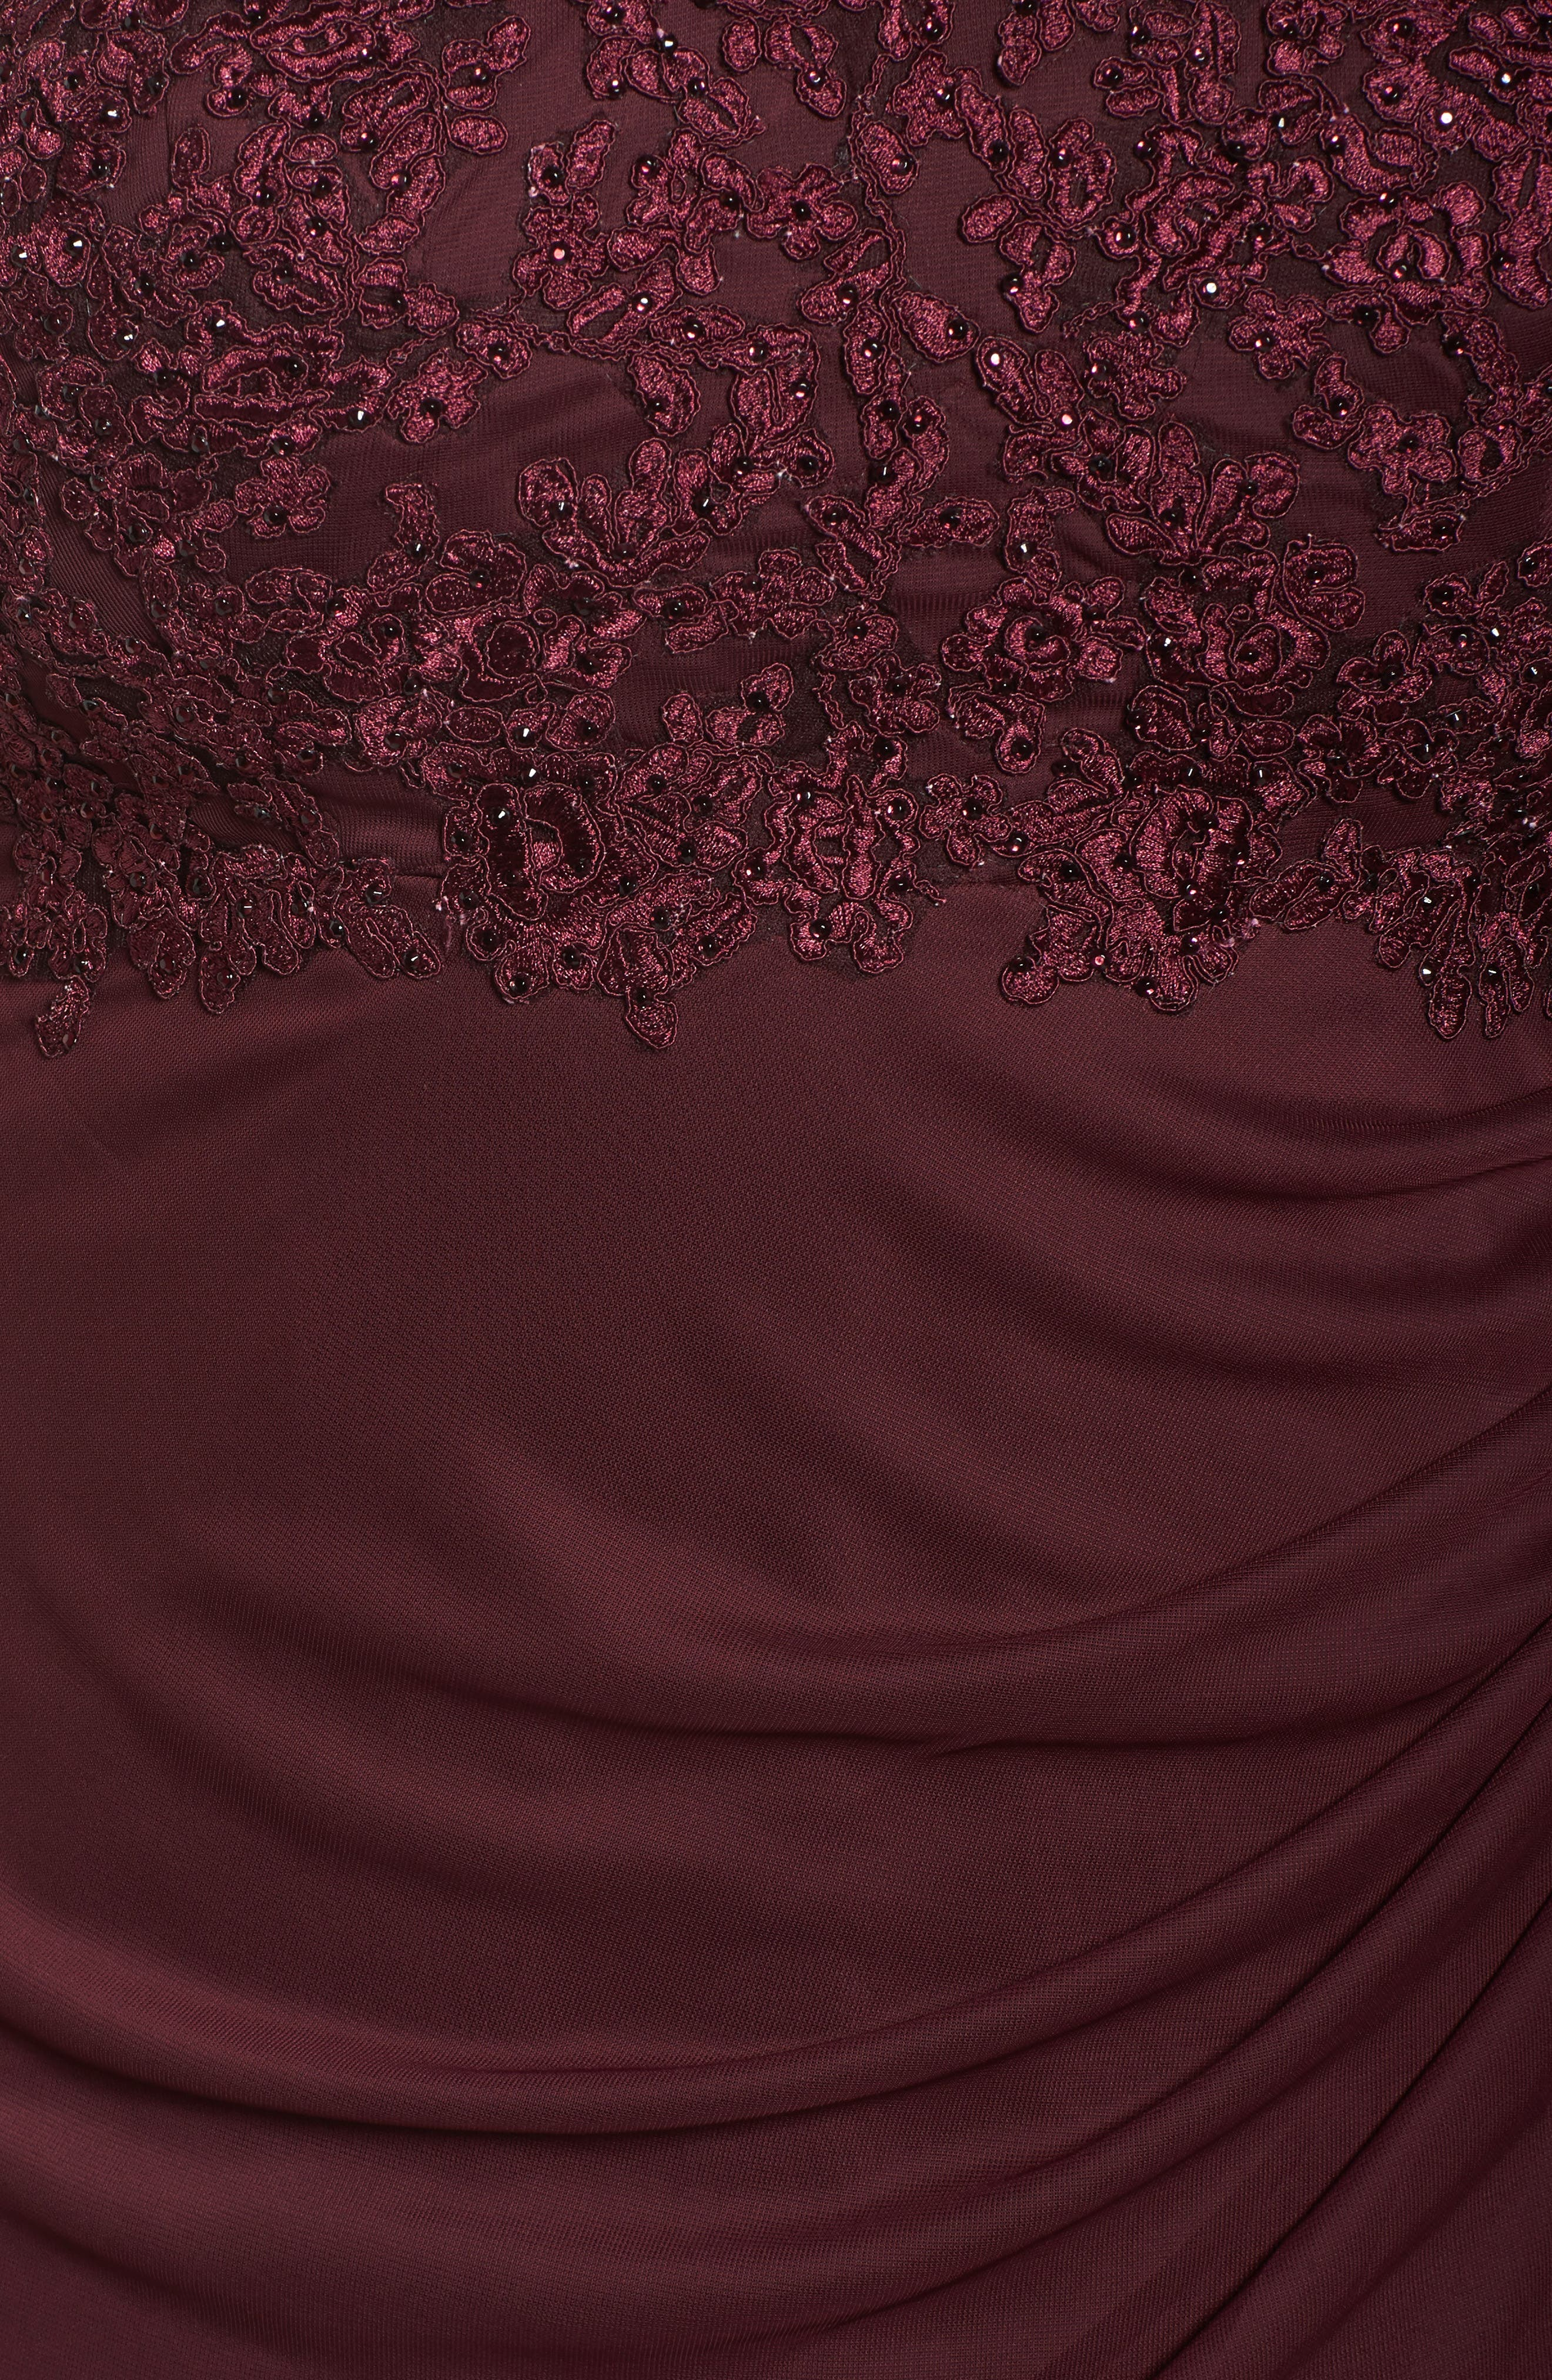 Embellished Ruched Jersey Gown,                             Alternate thumbnail 5, color,                             Wine